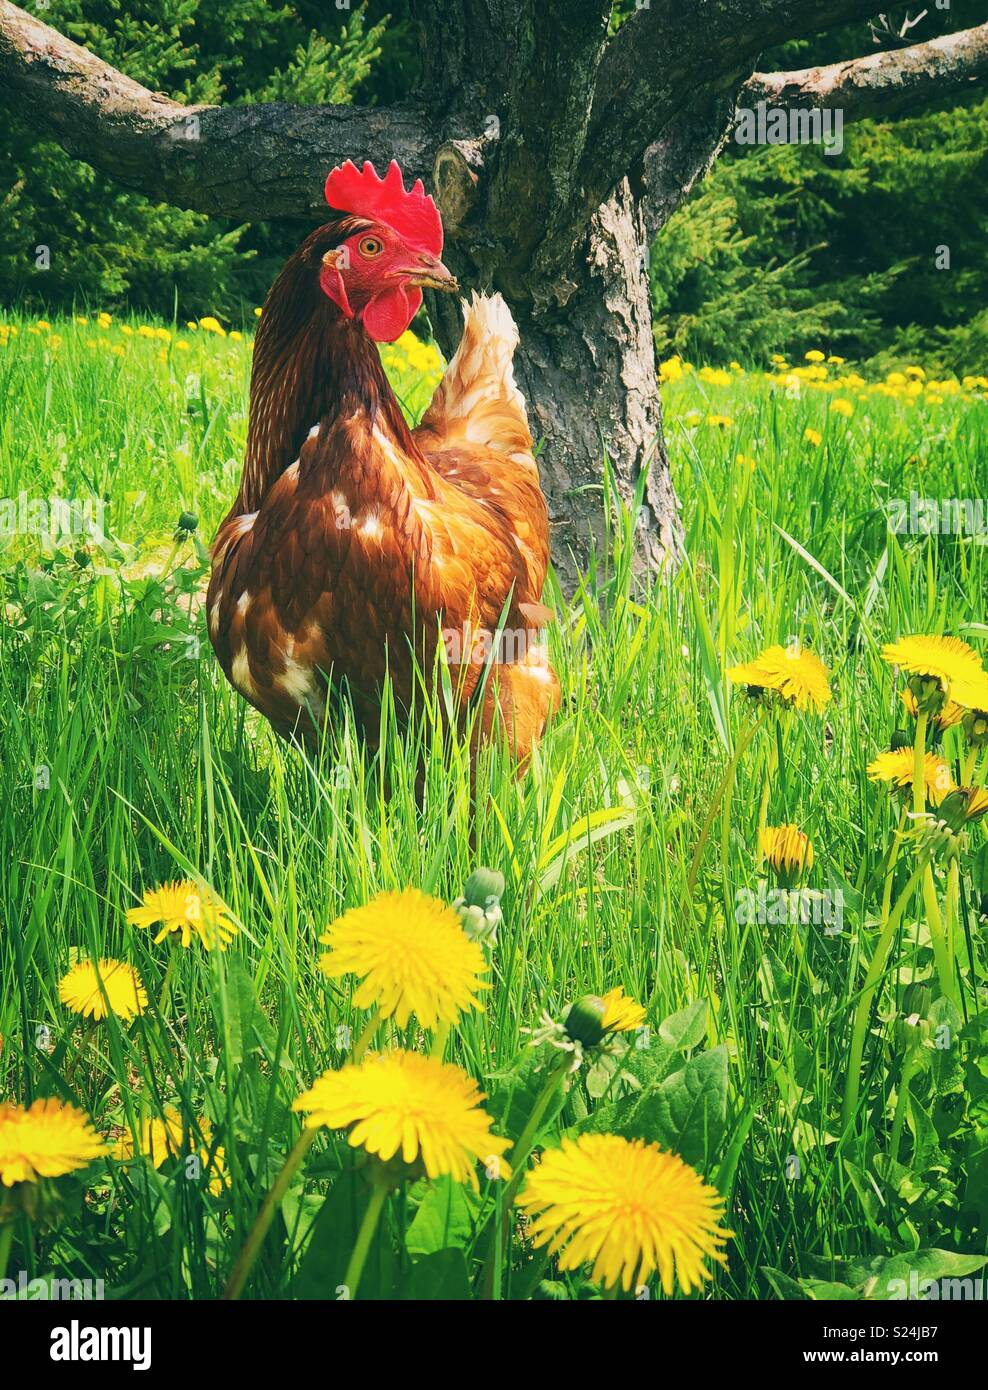 Rhode Island Red free range chicken in grass with bright yellow dandelions and apple tree trunk behind - Stock Image